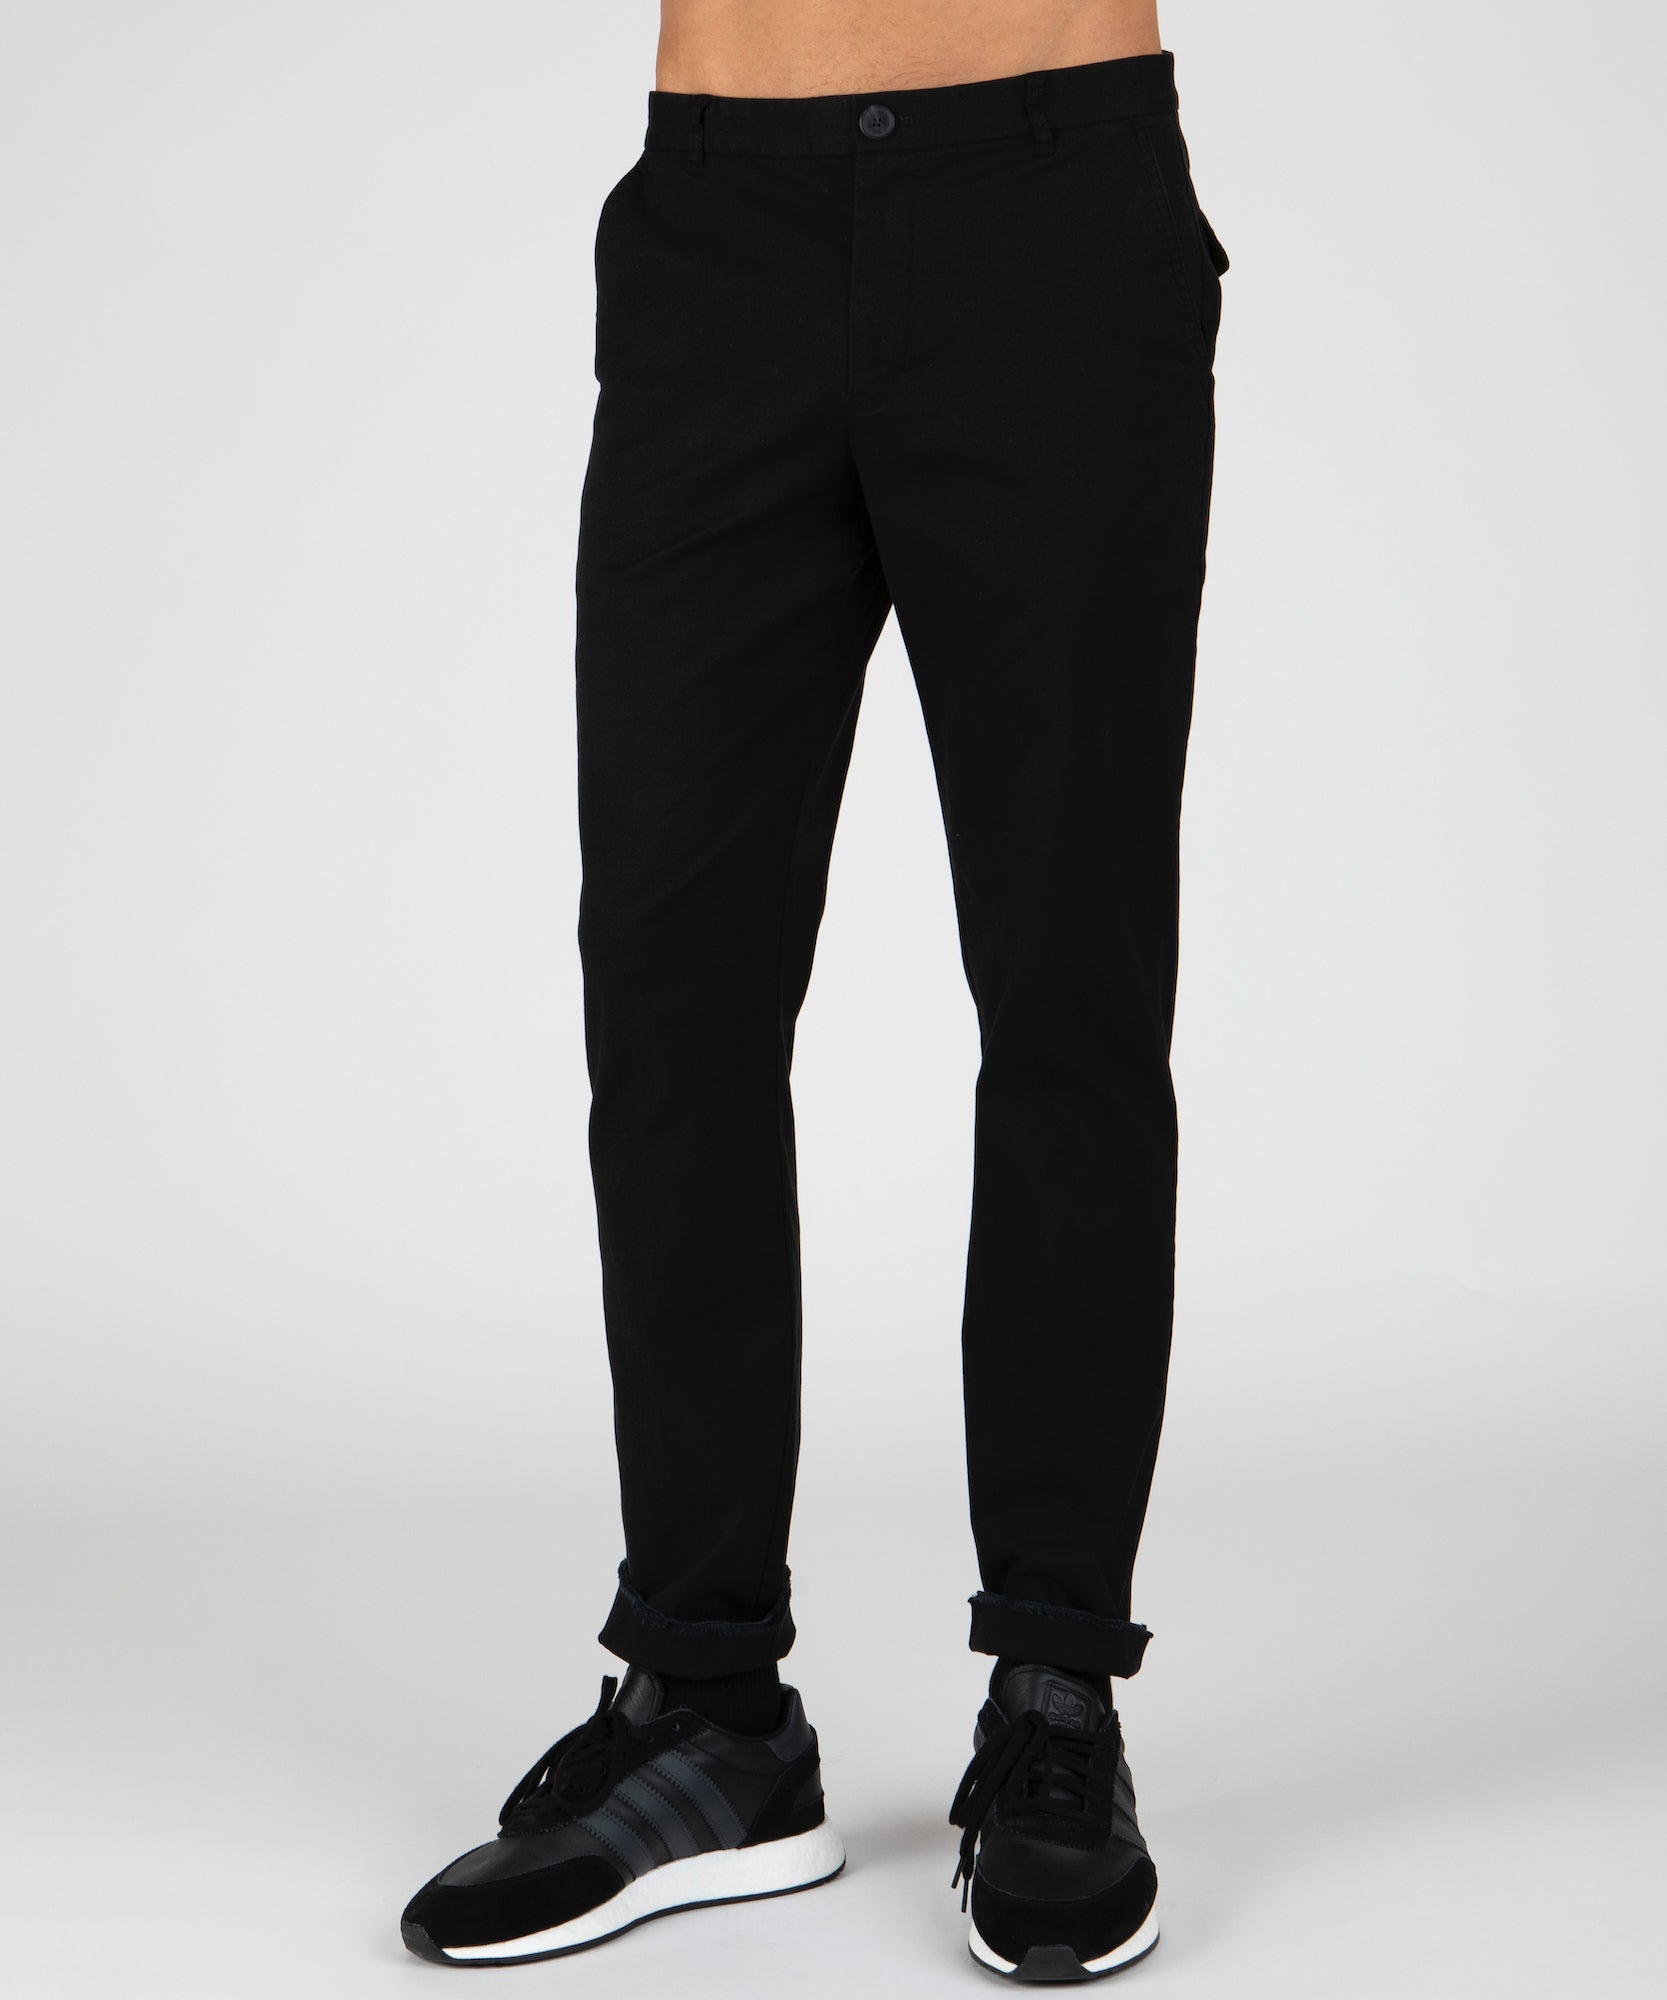 Black Stretch Cotton Garment Wash Slim Pants - Men's Casual Pants by ATM Anthony Thomas Melillo